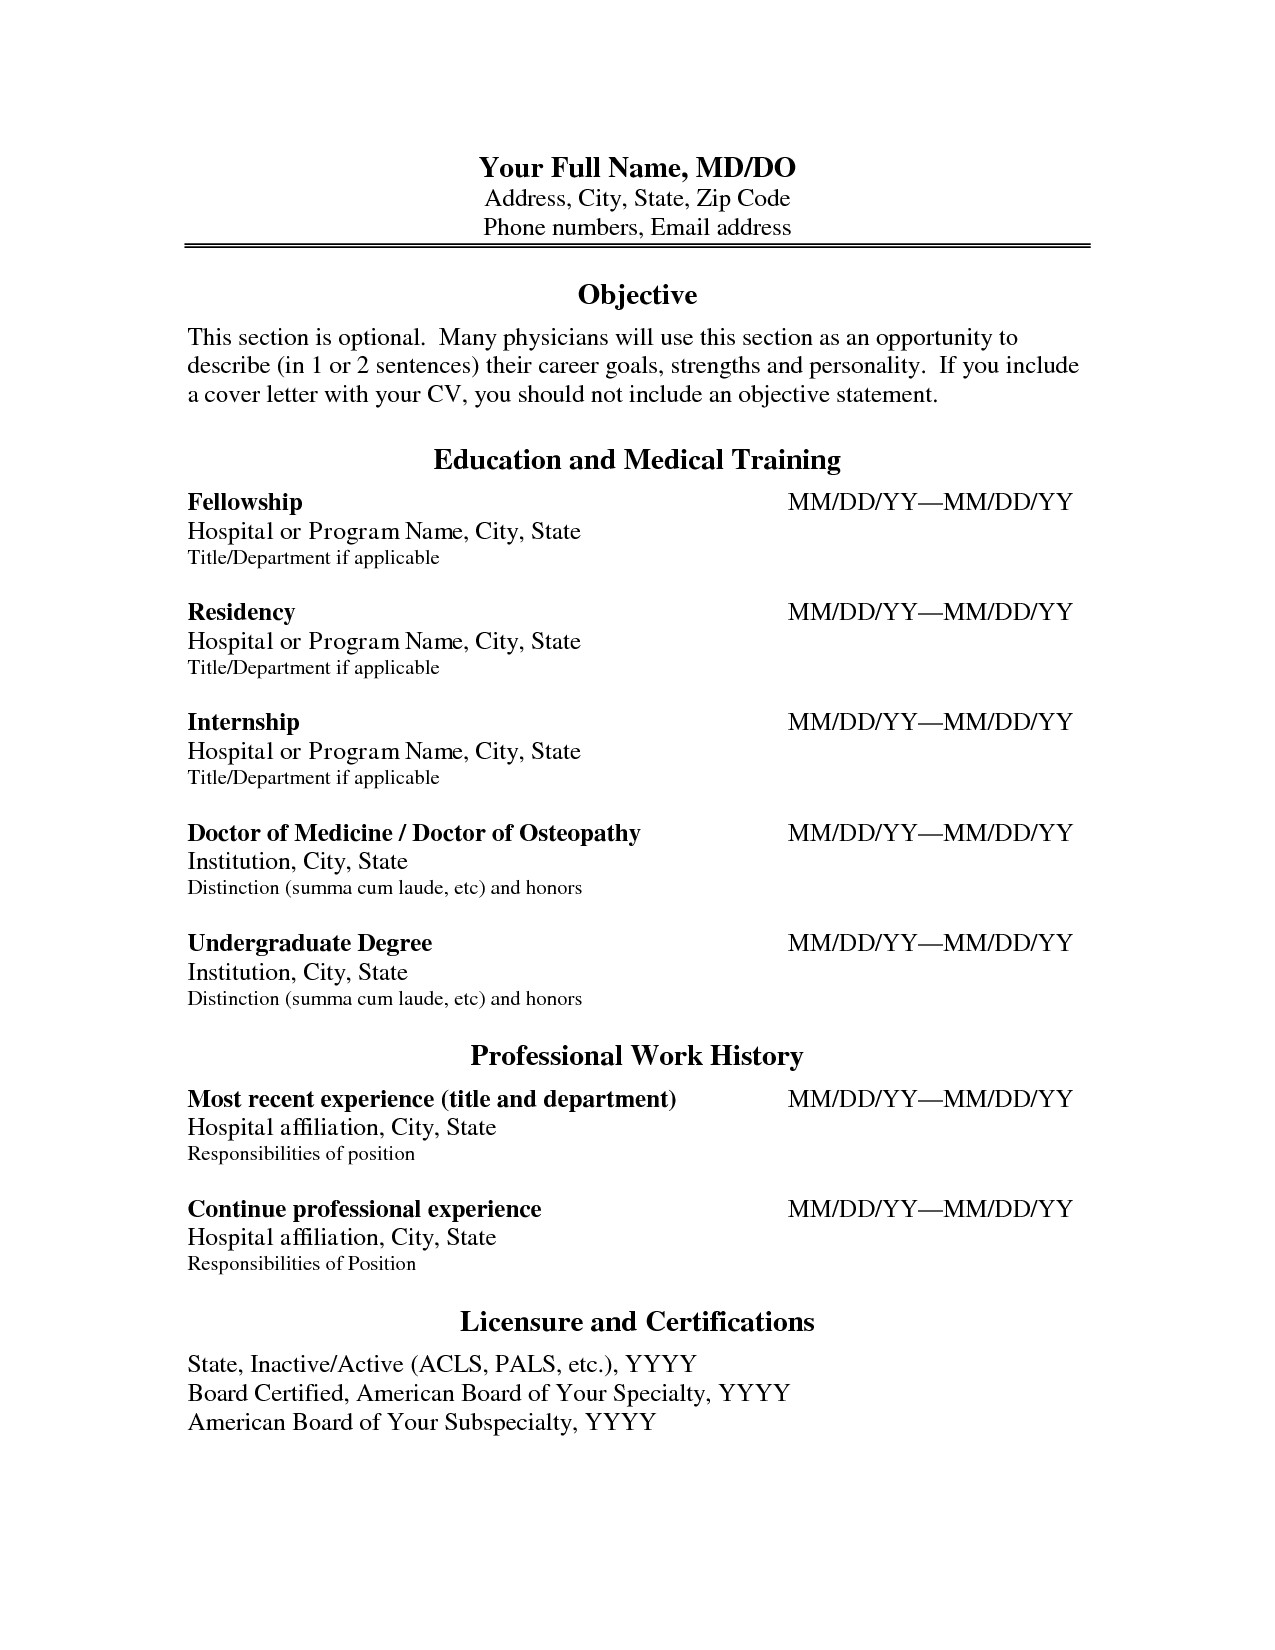 Medical Curriculum Vitae Templates Cv format Physician Physician assistant Resume and